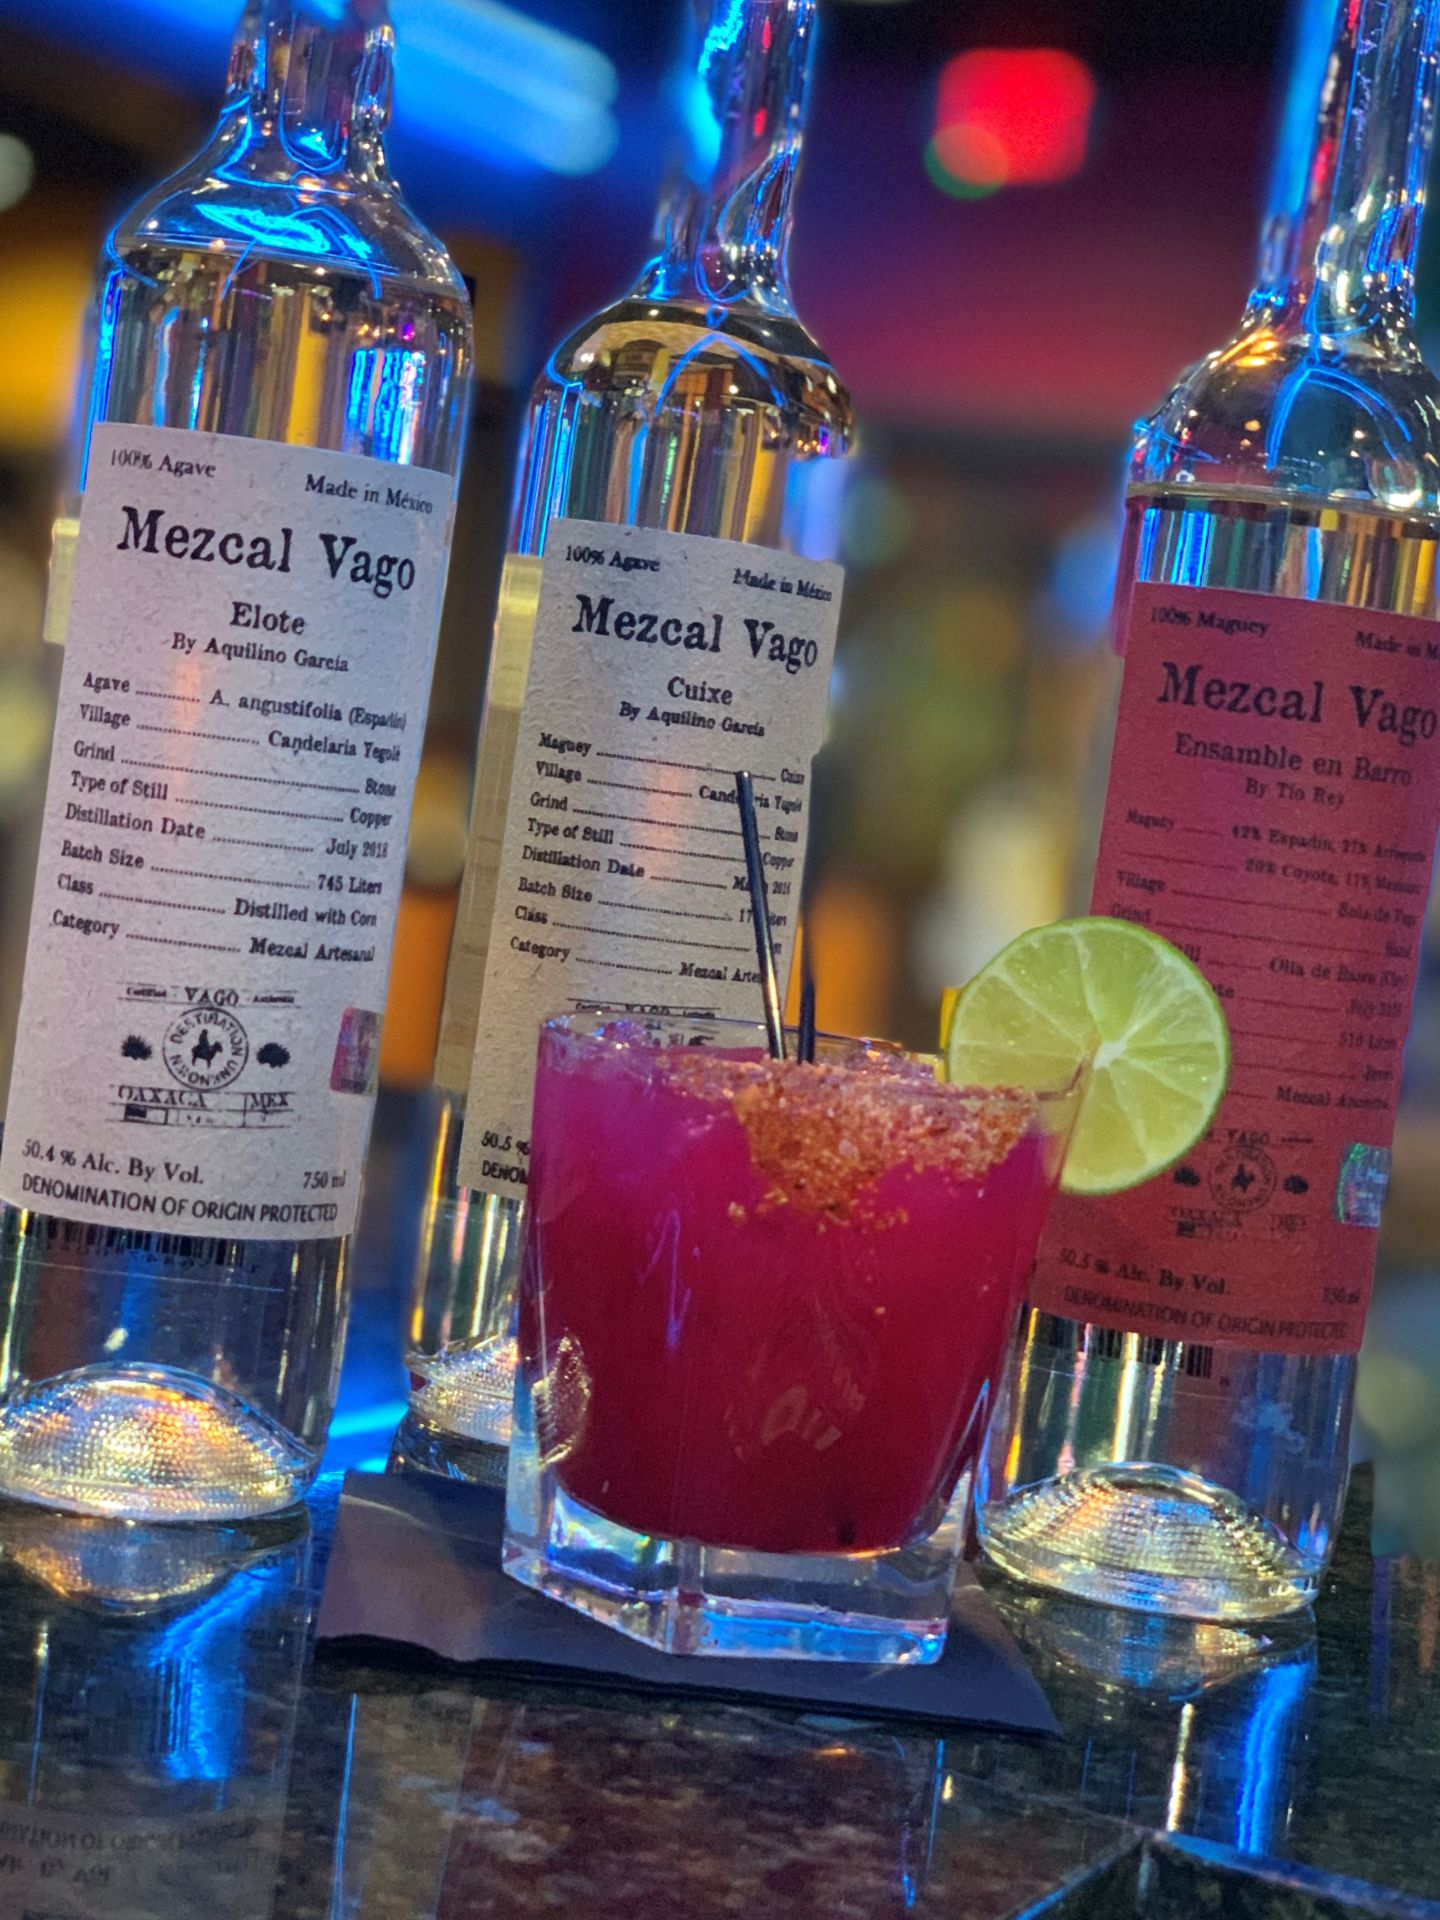 Cocktail with a lime and stirrer in front of three bottles of assorted tequila